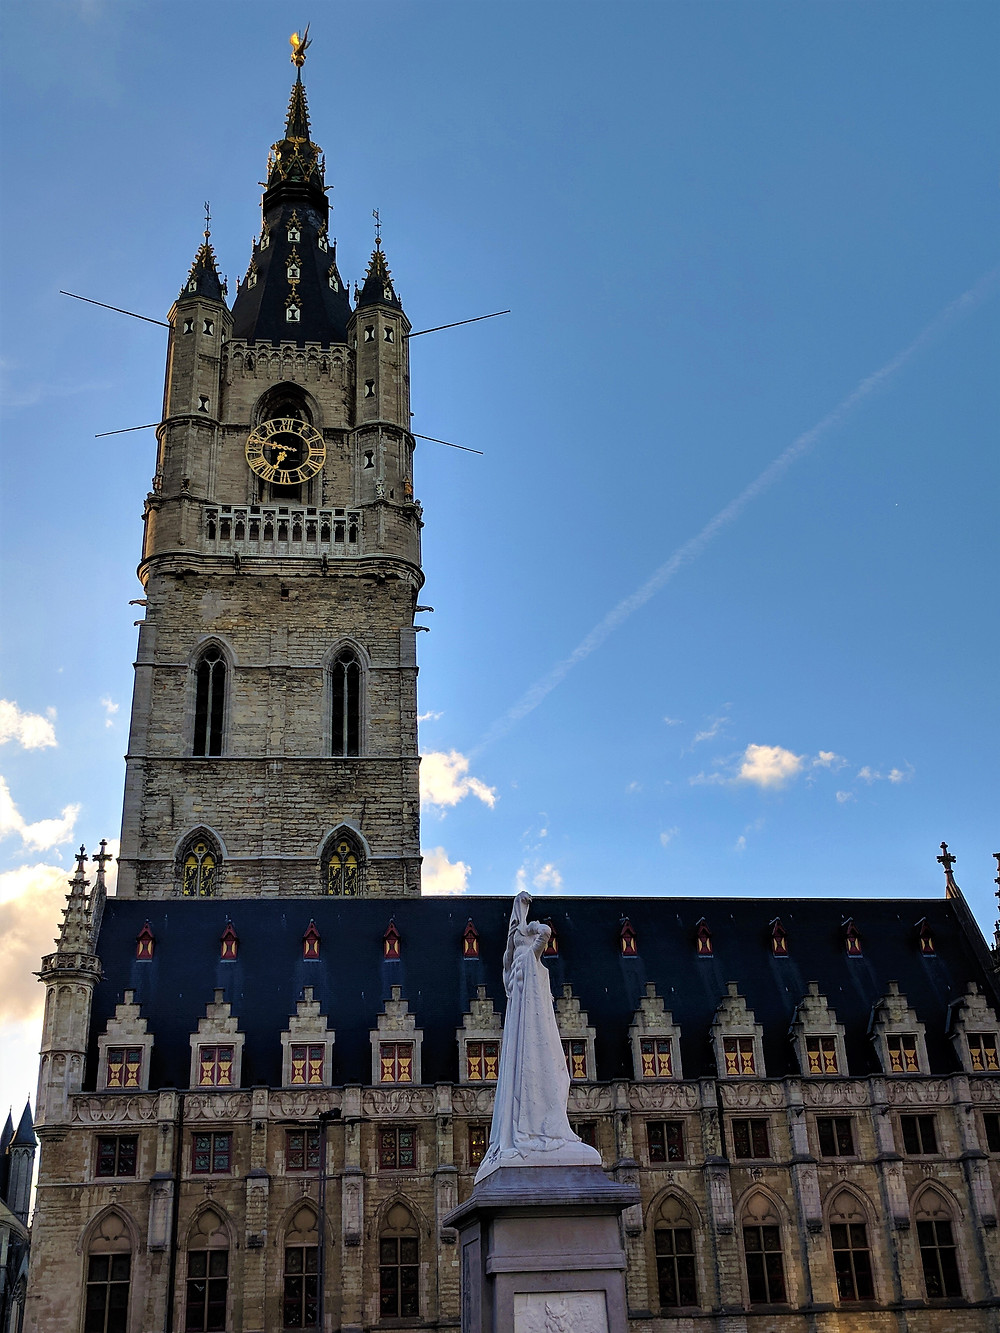 Belfry and Cloth Hall, Ghent.